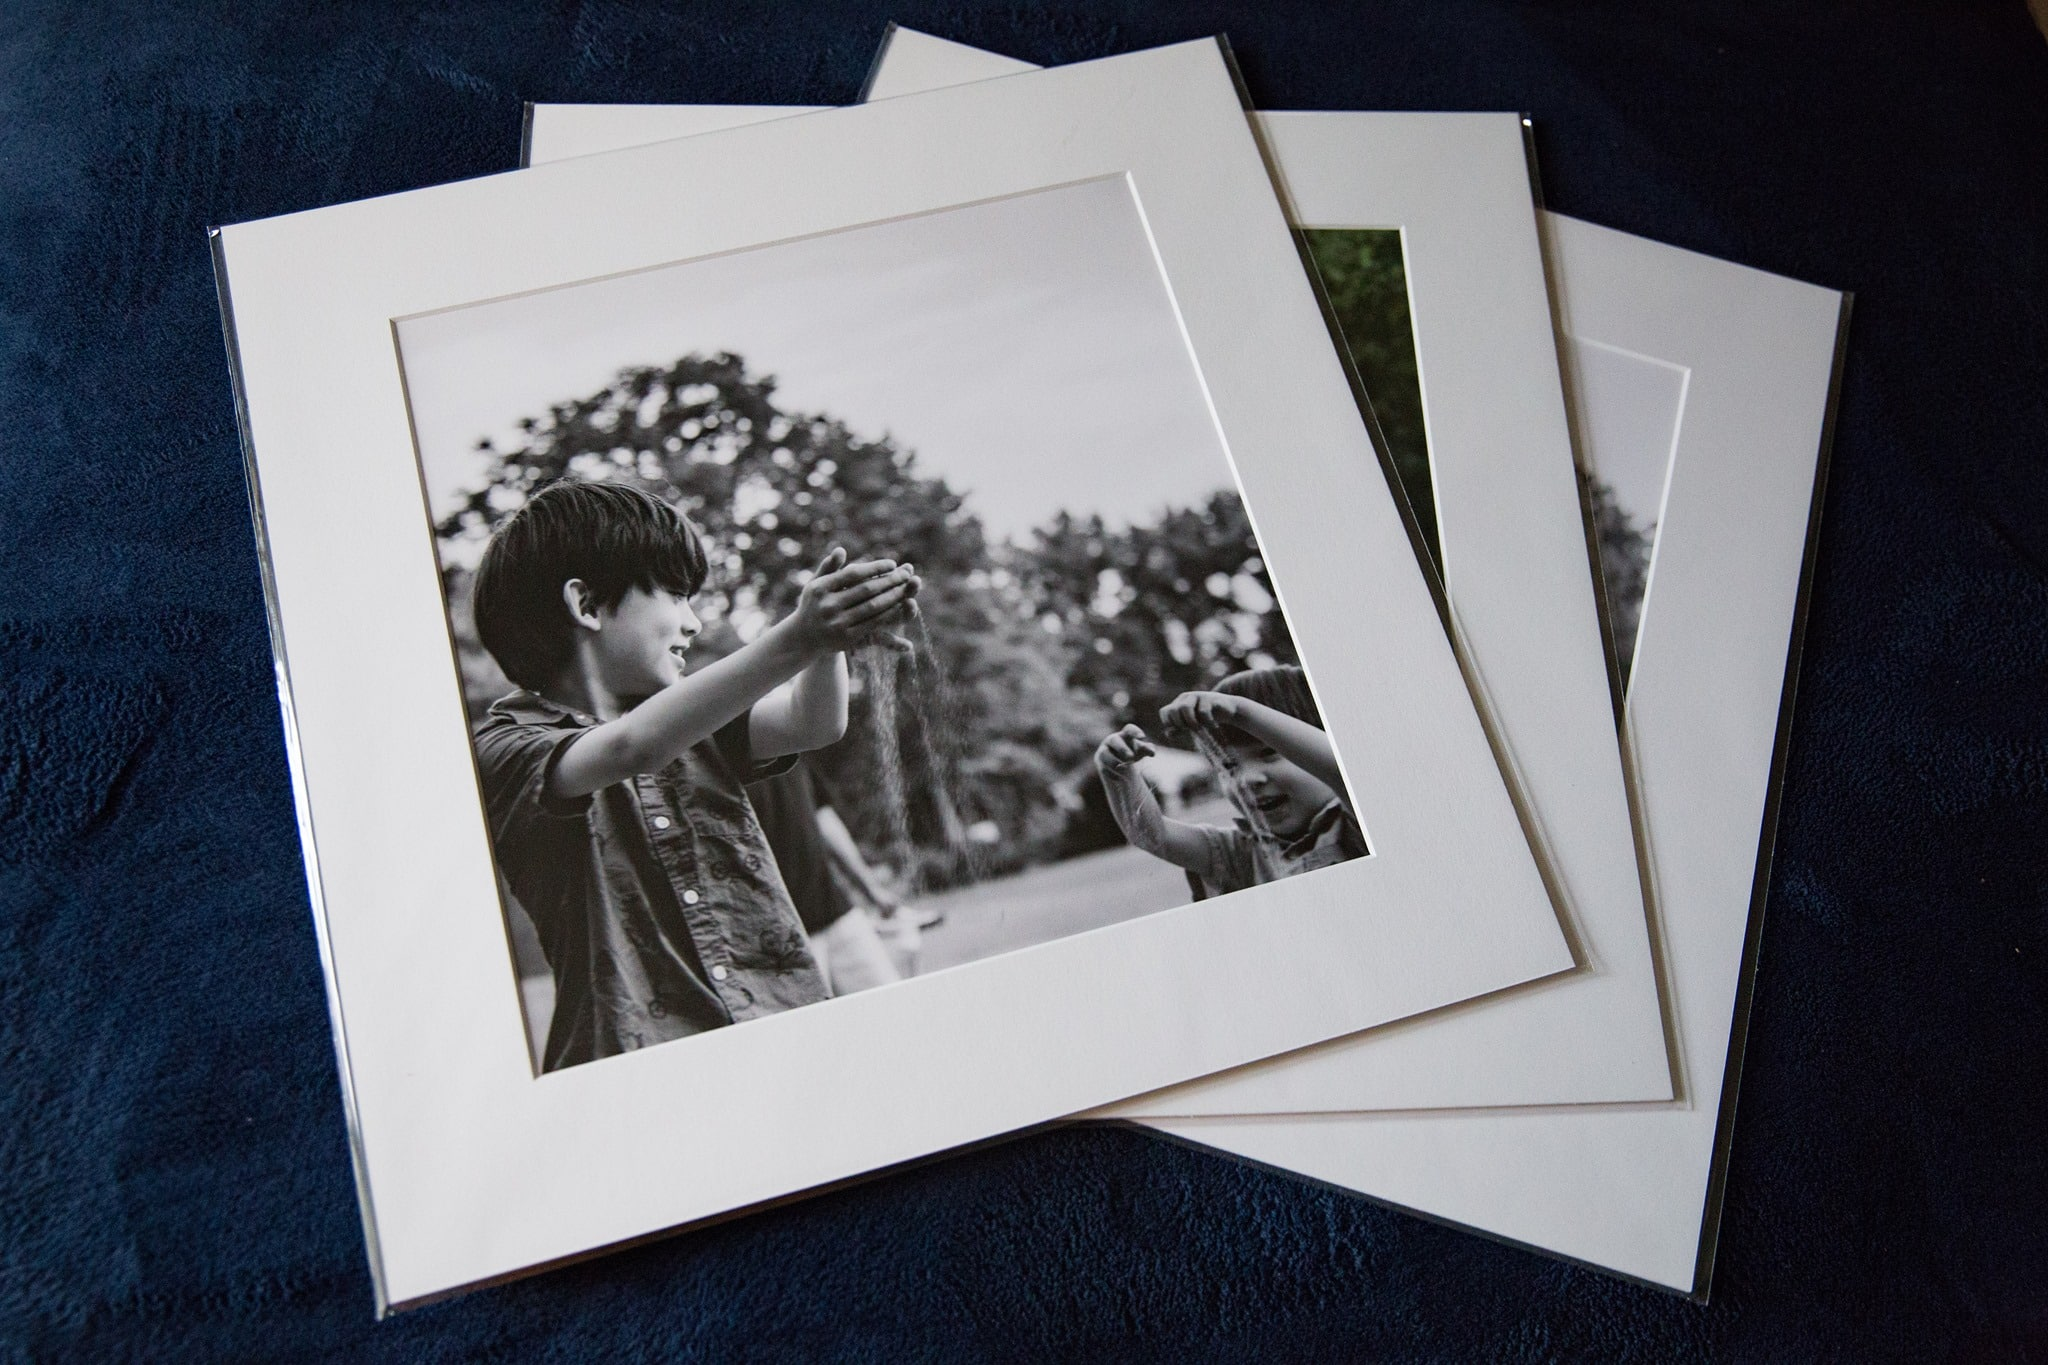 Black and white family photo prints being displayed